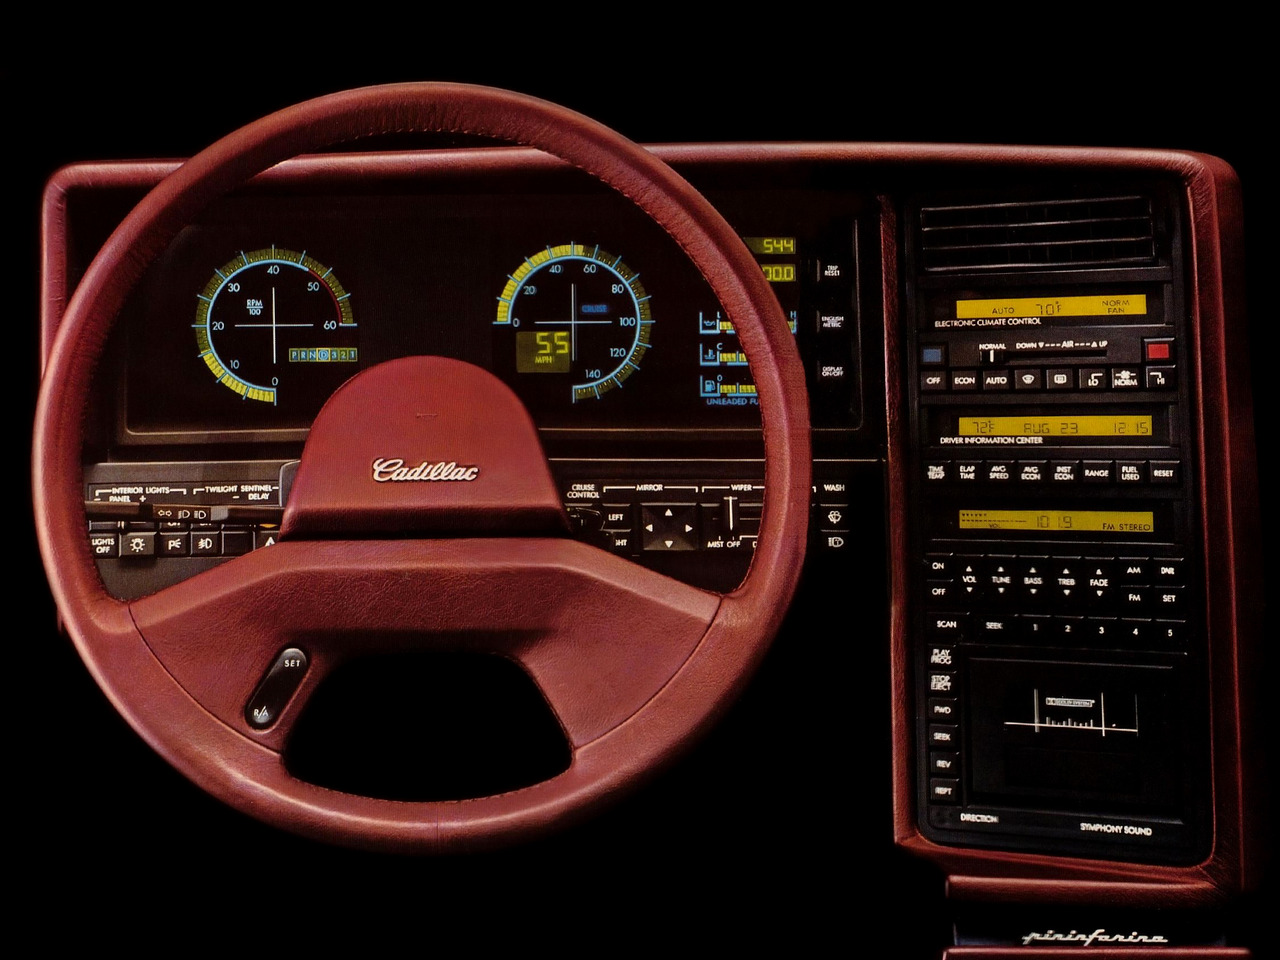 1987 Cadillac Allante - some say it was more complex to operate than the Space Shuttle.